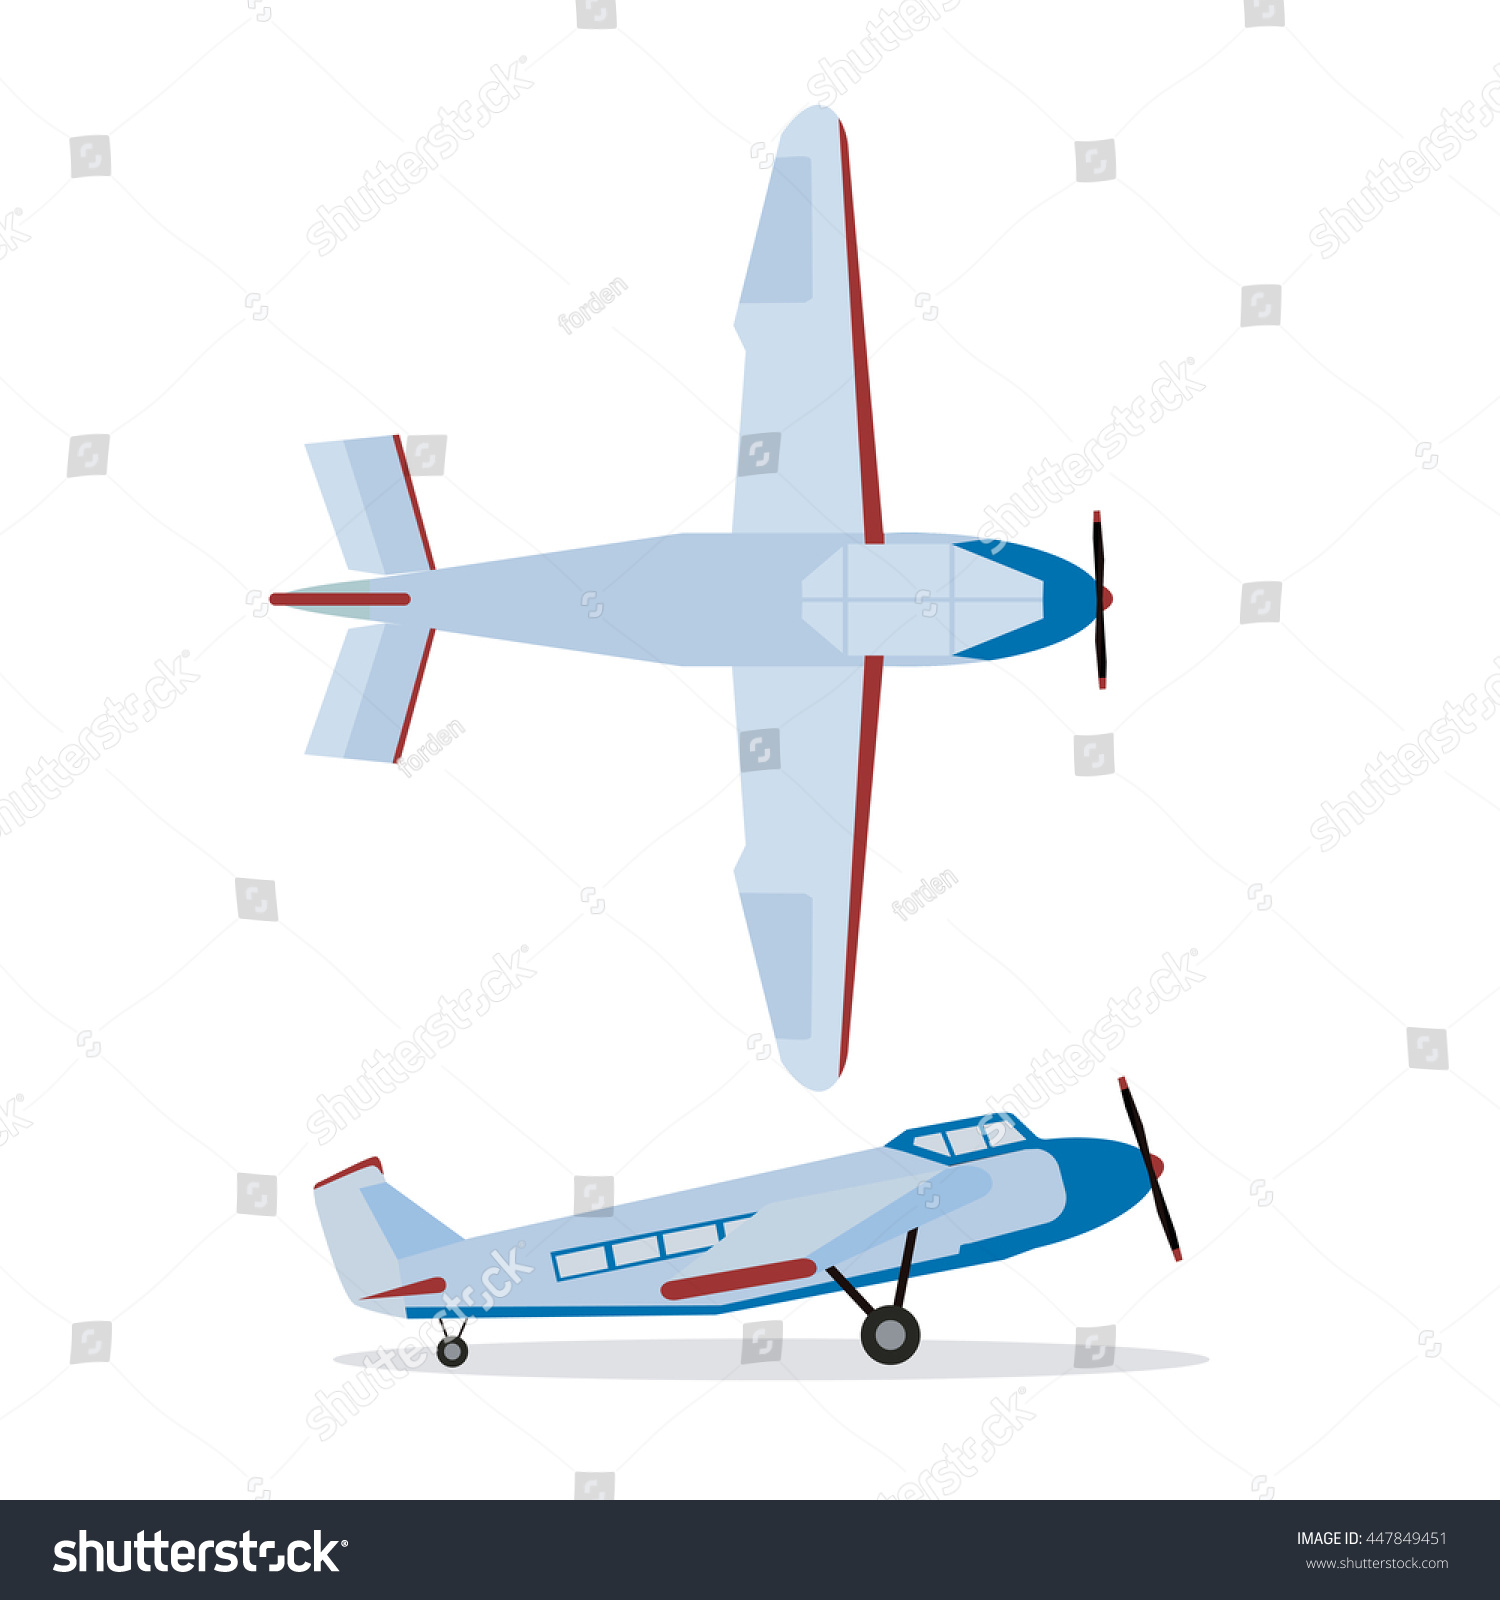 Uncategorized Plane Color color flat icons airplane propeller plane stock vector 447849451 of with top and side view illustration